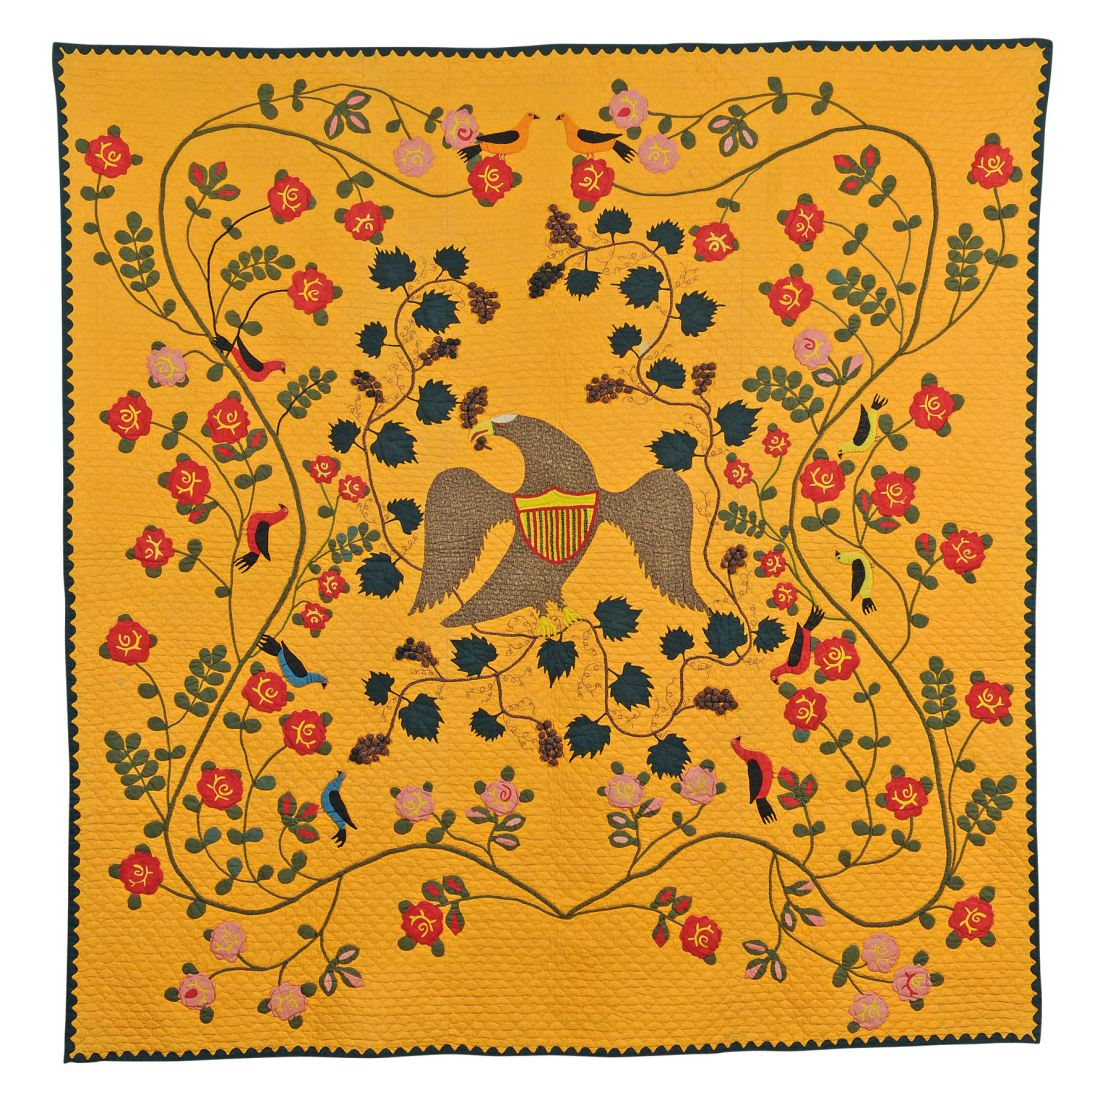 A stunning pieced and appliquéd cotton memorial quilt, created circa 1863 by Mary (aka Polly) Bell Shawvan. Its background is a warm yellow, almost a school bus yellow. At its center is a spread-winged eagle with an American shield on its chest. It is surrounded by blooming branches and vines in a winding but symmetrical pattern. Several small birds with black wings perch on the branches. Unlike most quilt-makers, Shawvan treated the quilt as a large canvas to spread her imagery upon, rather than stitching blocks together.